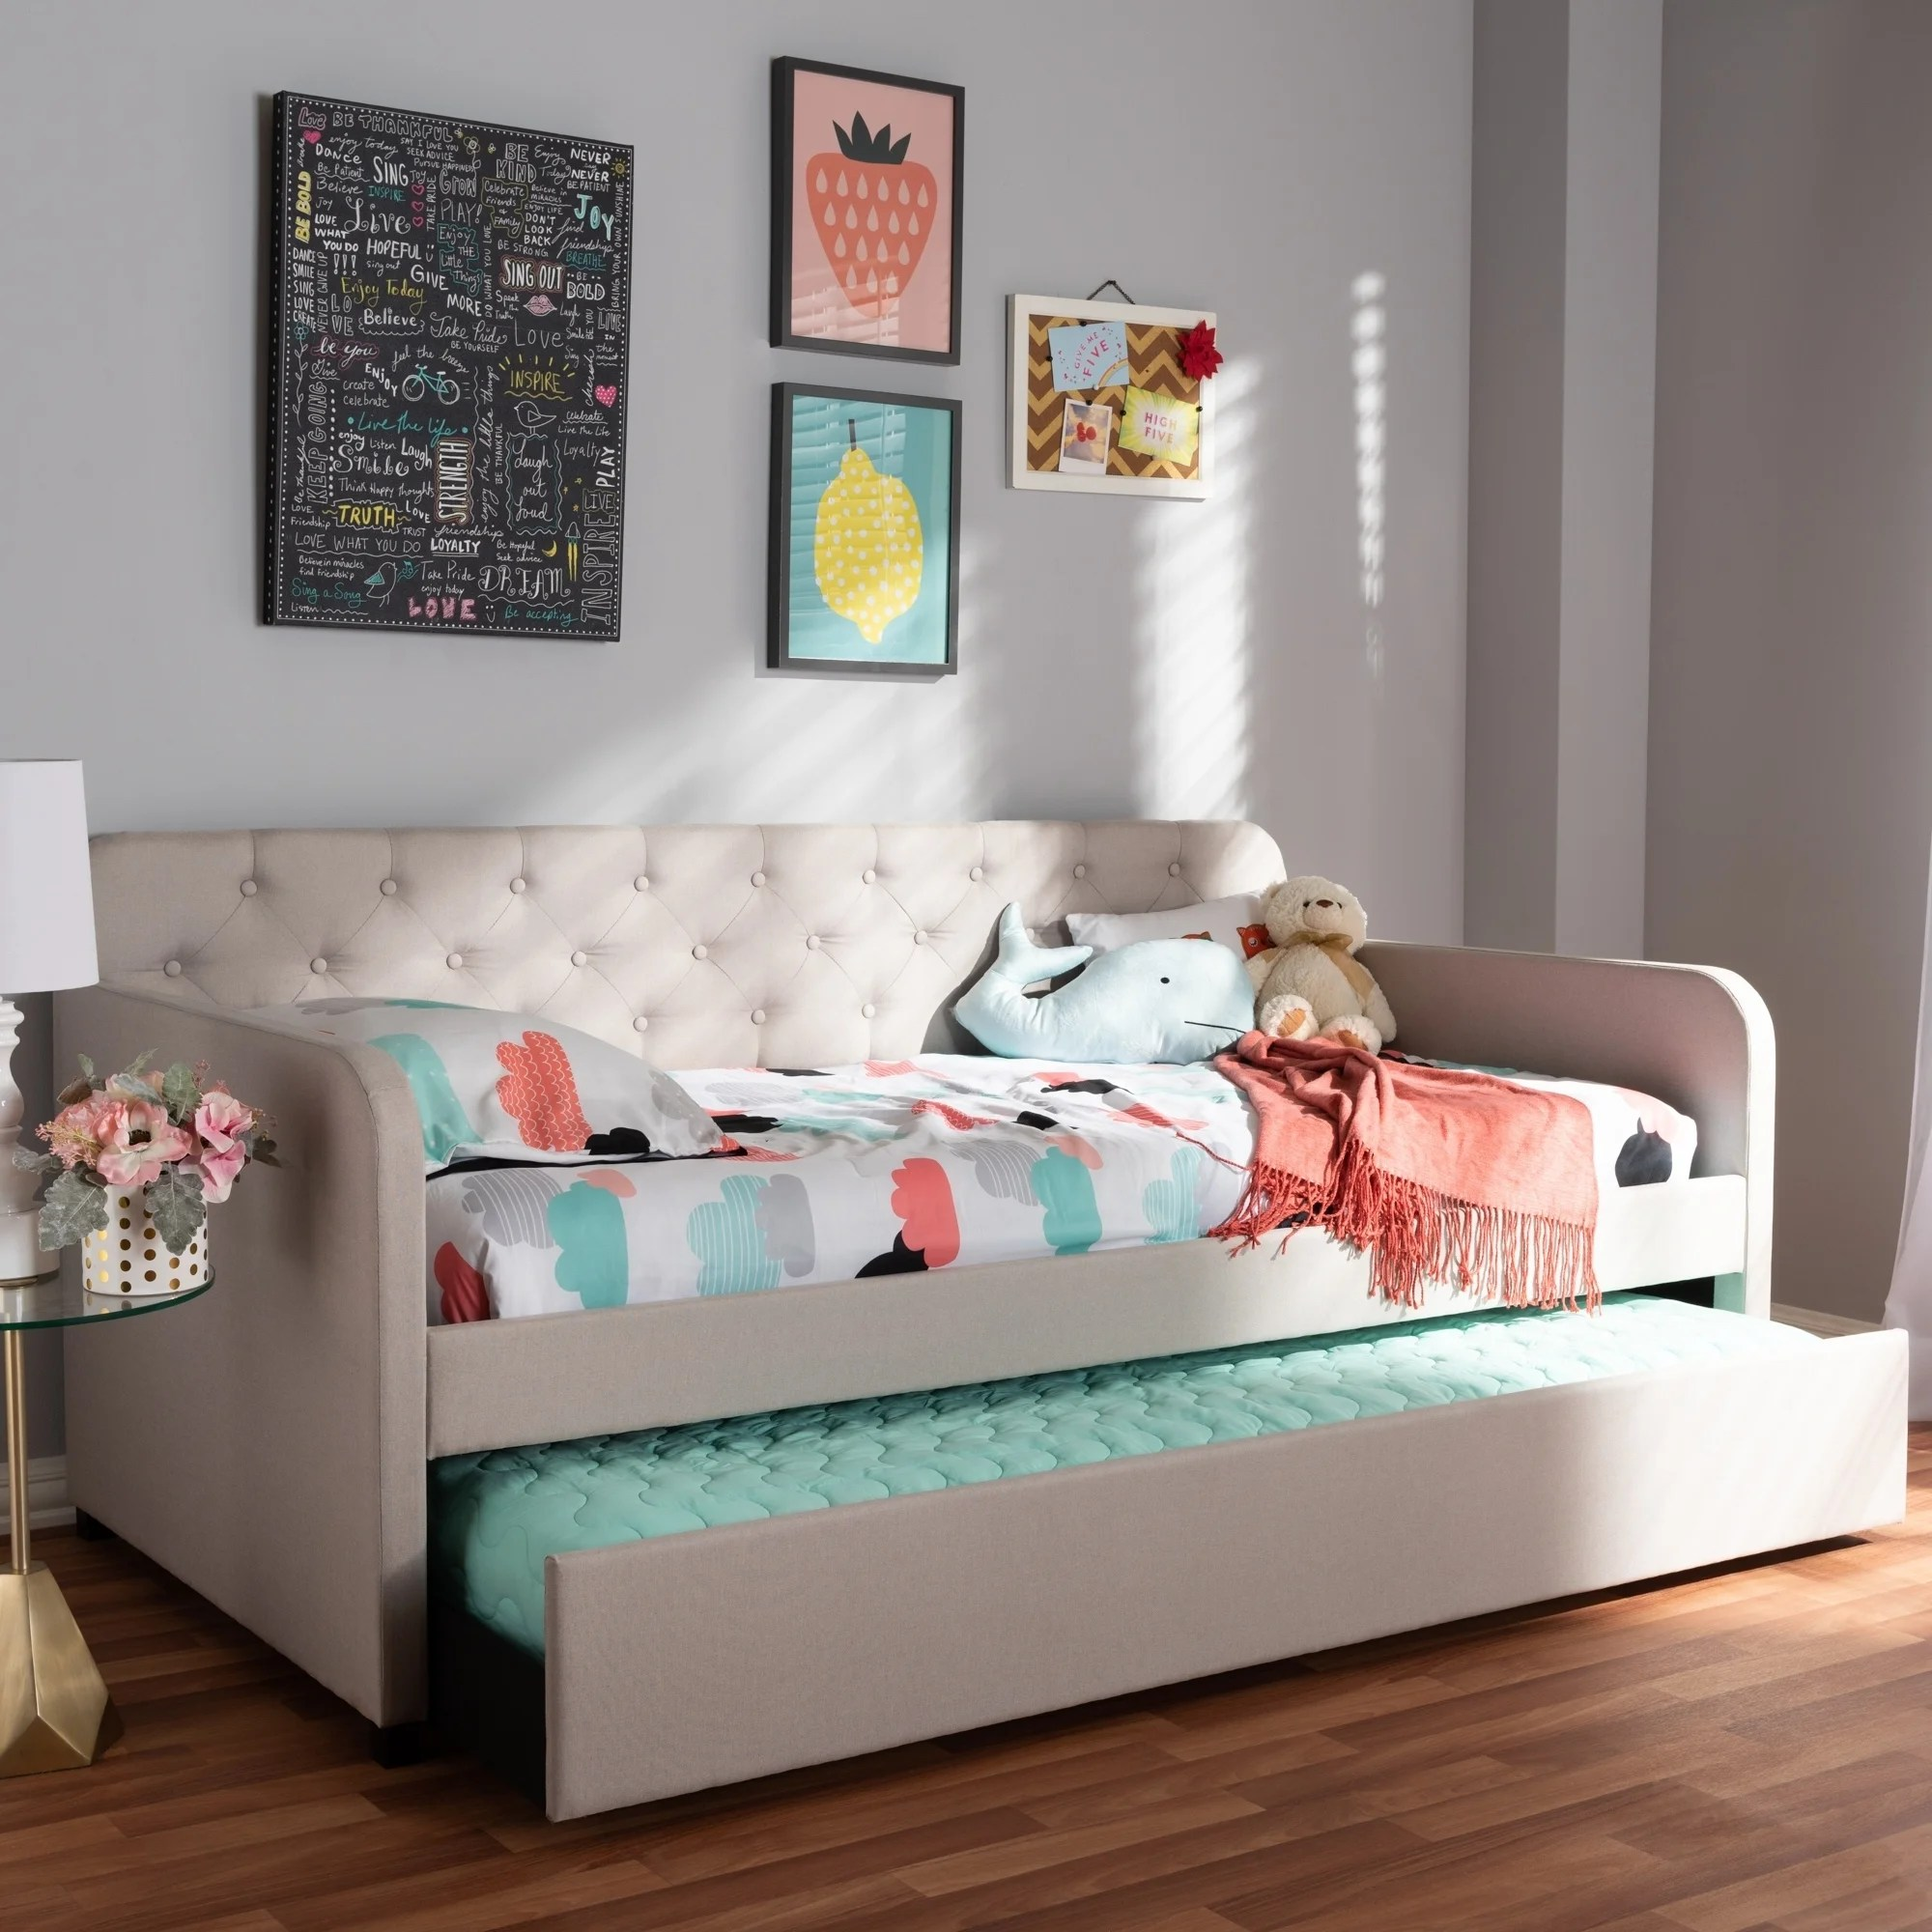 Cheap Kids Beds Online Buy Kids Toddler Beds Online At Overstock Our Best Kids